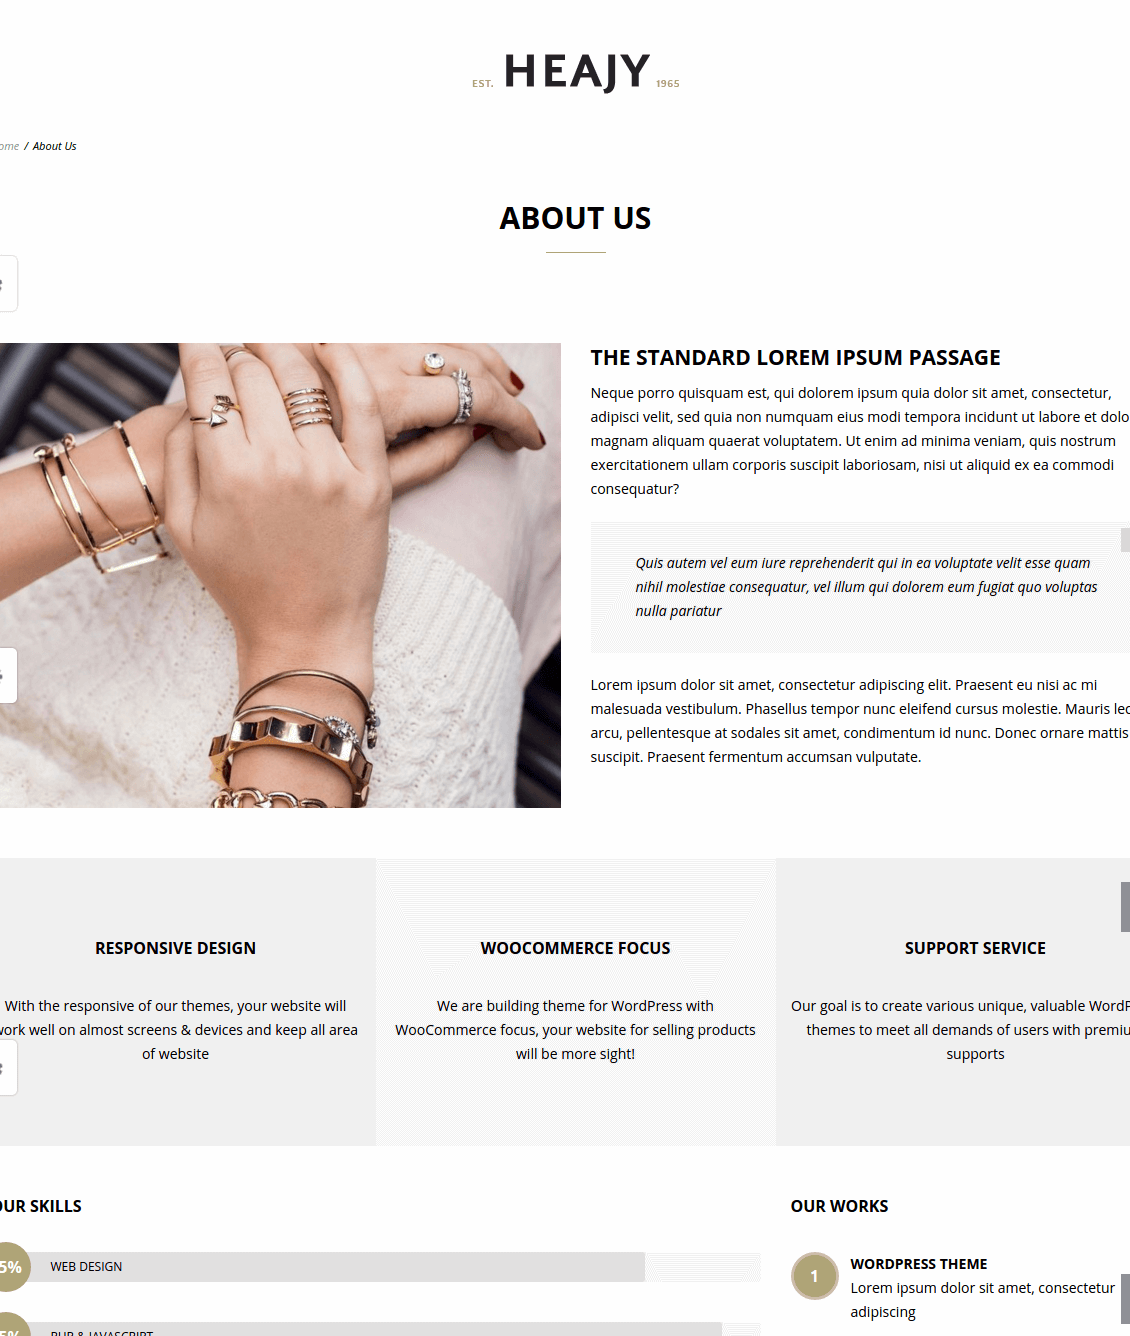 Heajy About us page